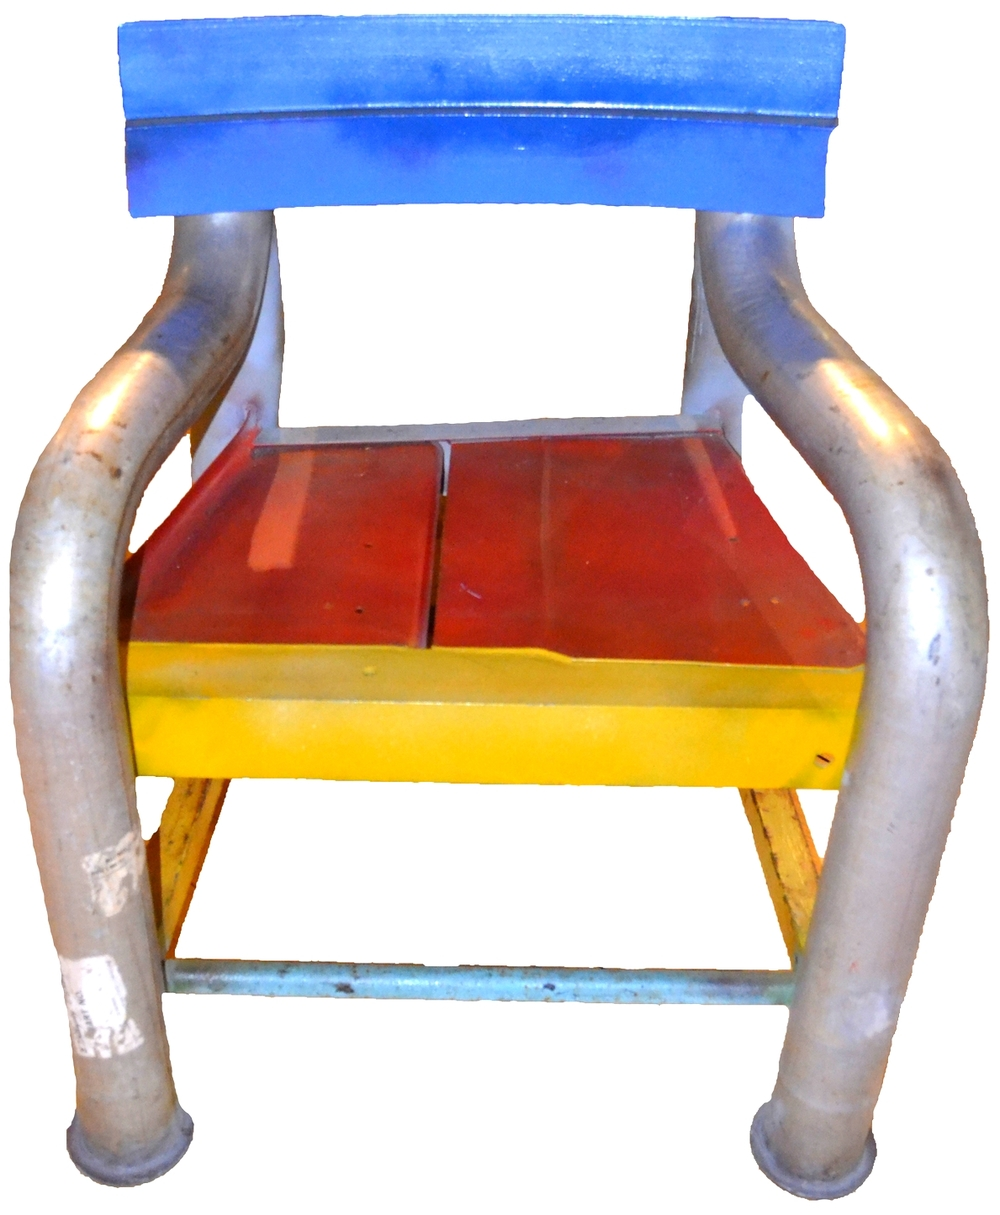 Blue Back Bus Chair   welded found steel, enamel paint, h 37w 33d 32 inches SOLD